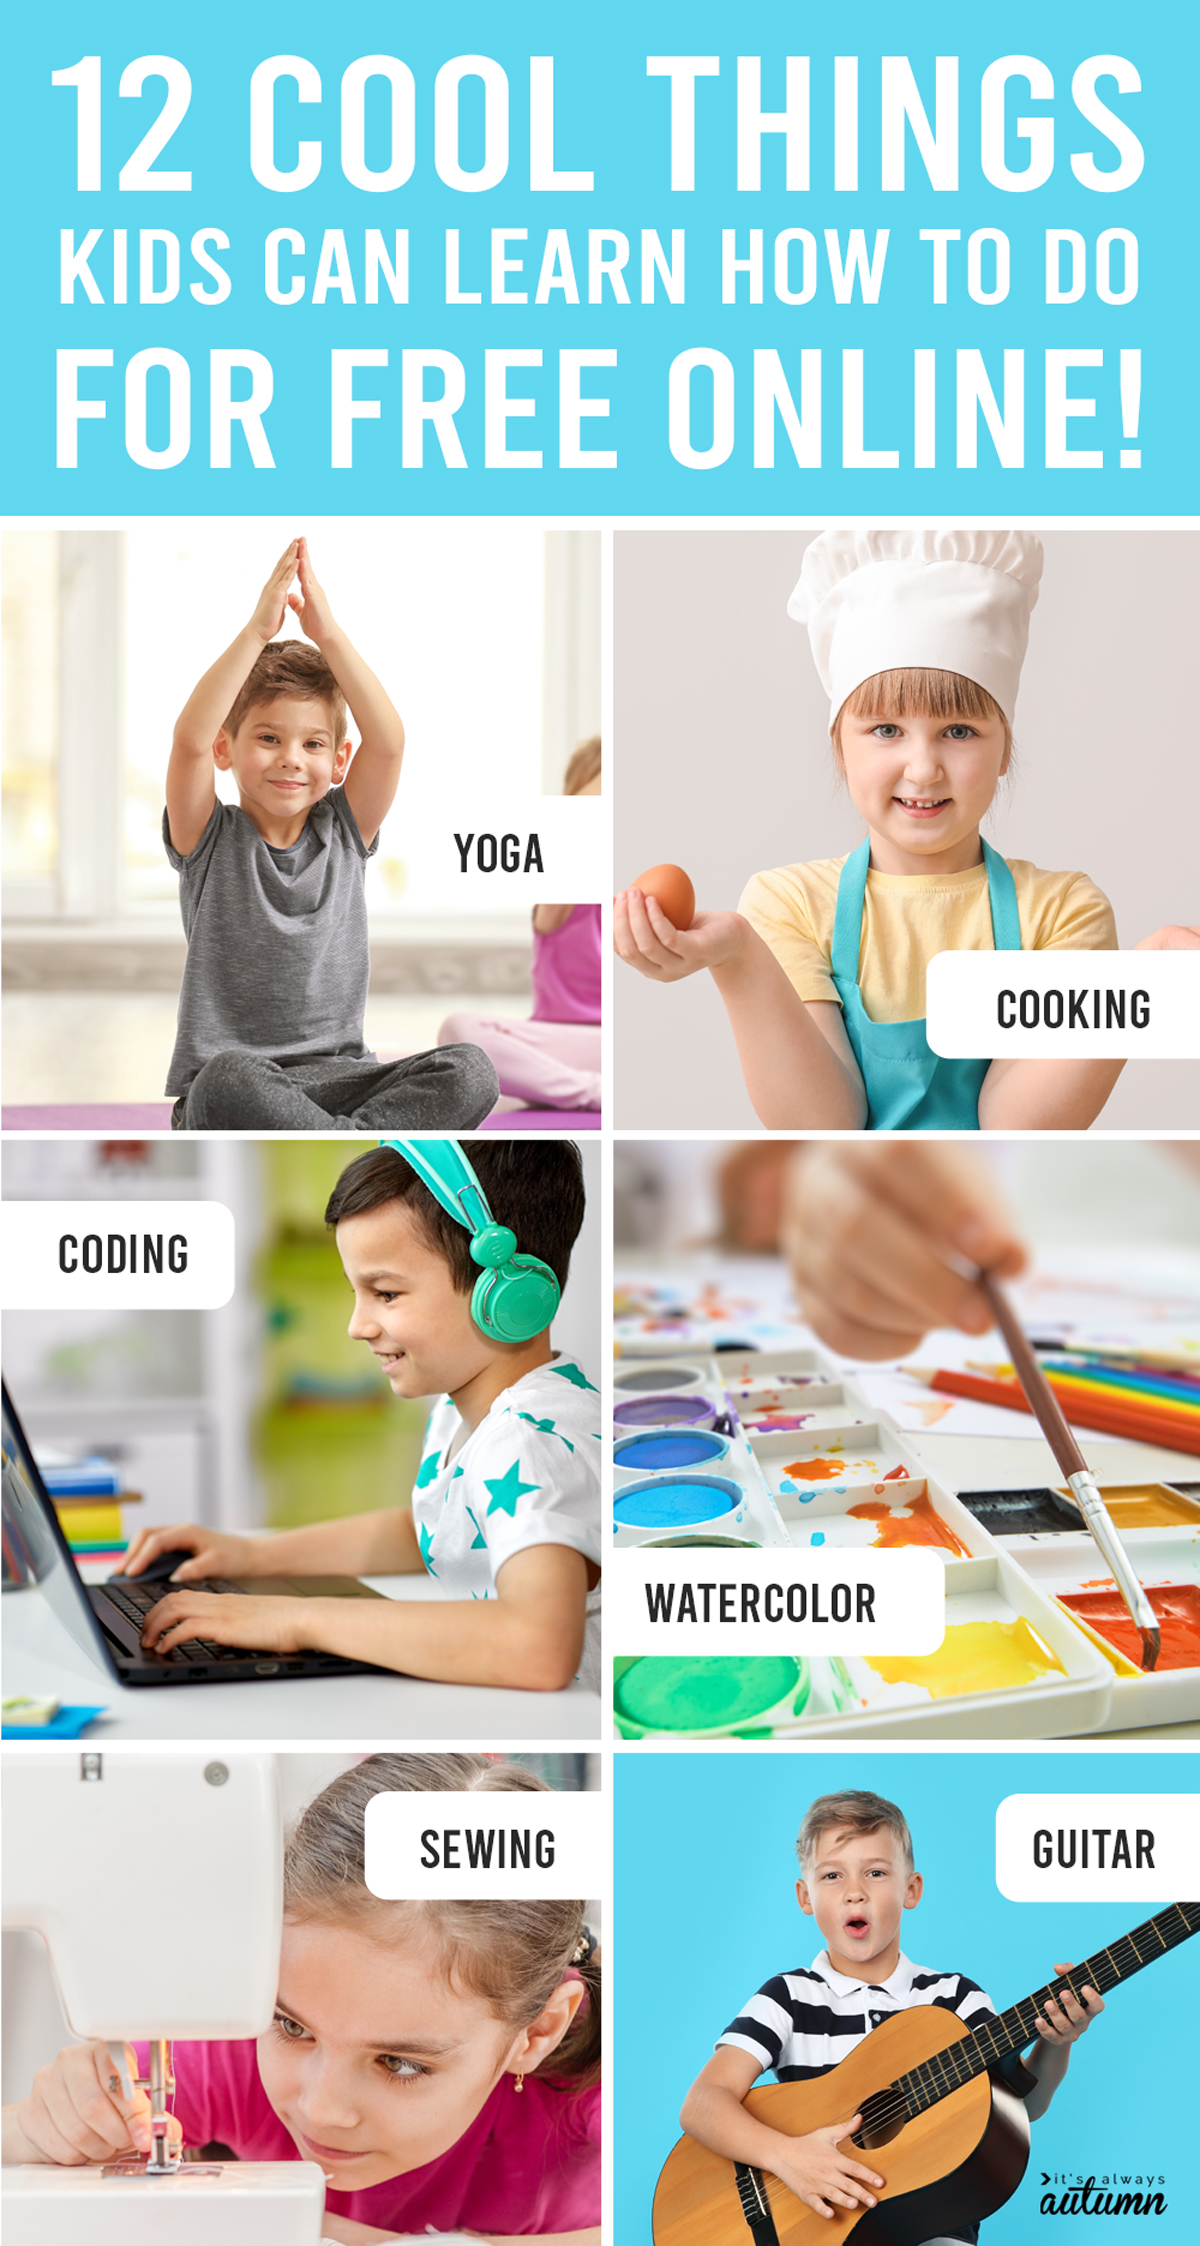 Click through for 12 cool things kids can learn online for FREE!